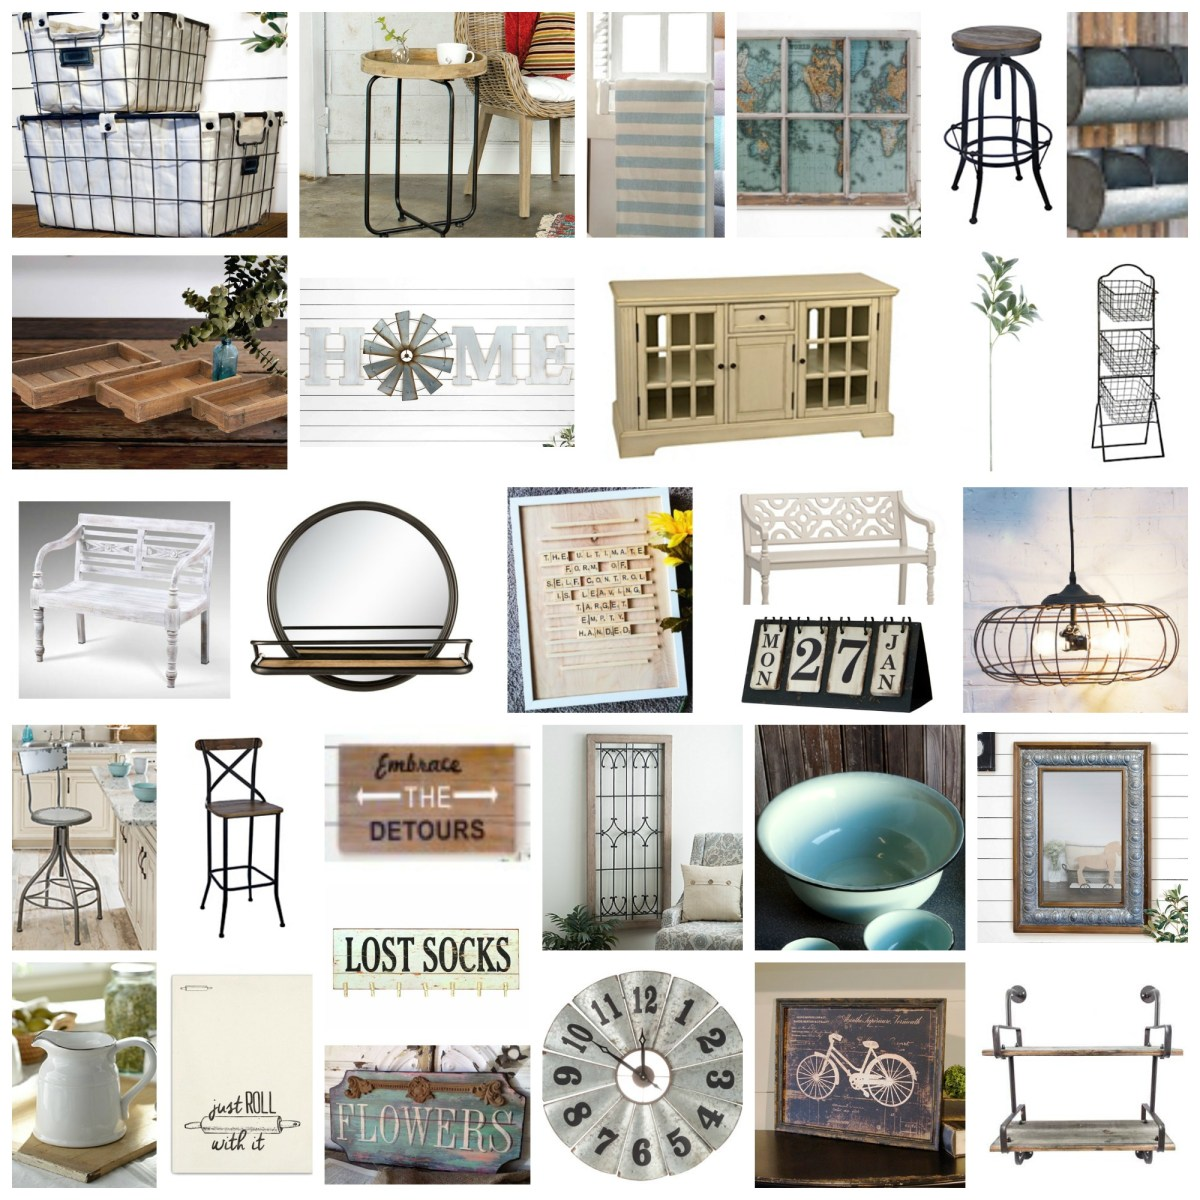 Home Decor Daily Deals: Monday, March 27, 2017